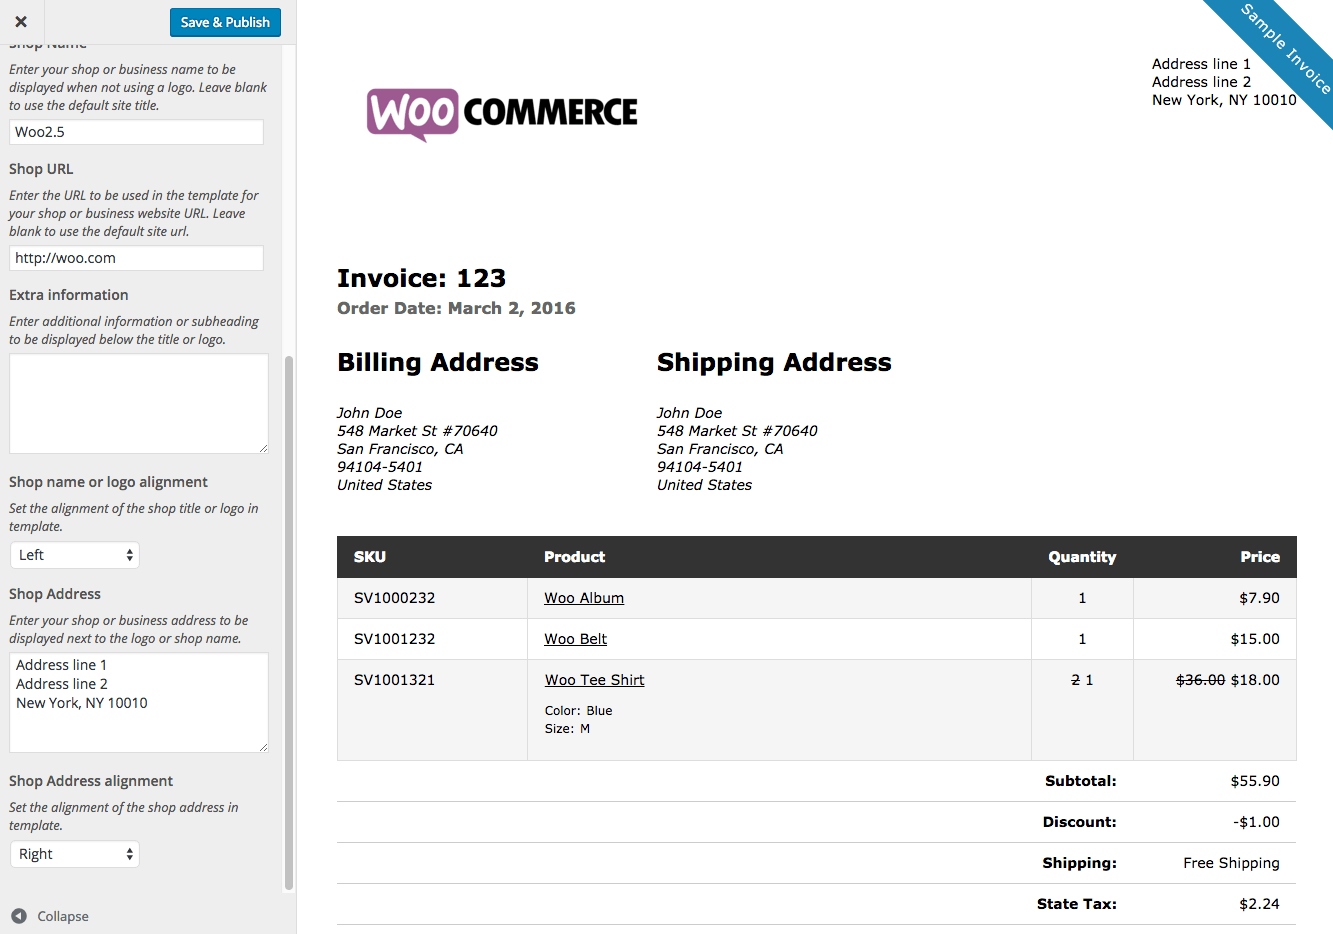 Weverducreus  Picturesque Print Invoices Amp Packing Lists  Woocommerce With Fair Woocommerce Print Invoices  Packing Lists Customizer With Delightful Receipt Template Pages Also Brother Receipt Printer In Addition Impact Receipt Printer And Returns Without A Receipt As Well As Taxi Receipt San Francisco Additionally Receipt For Rent Payment Template From Woocommercecom With Weverducreus  Fair Print Invoices Amp Packing Lists  Woocommerce With Delightful Woocommerce Print Invoices  Packing Lists Customizer And Picturesque Receipt Template Pages Also Brother Receipt Printer In Addition Impact Receipt Printer From Woocommercecom